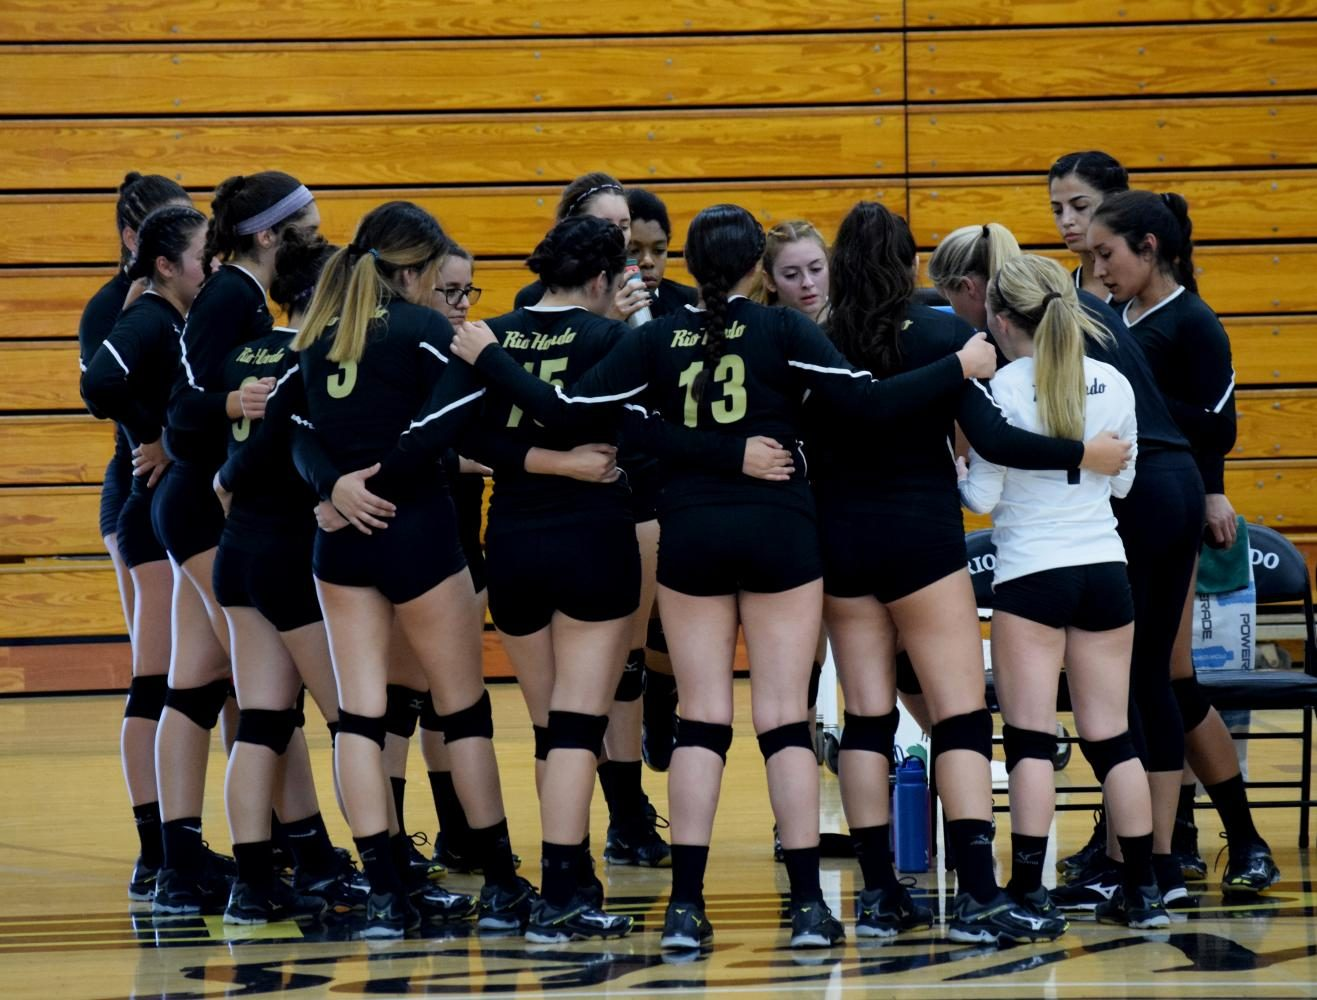 The+Rio+Hondo+women%27s+volleyball+team+has+had+a+tough+time+finding+consistent+play+this+season.